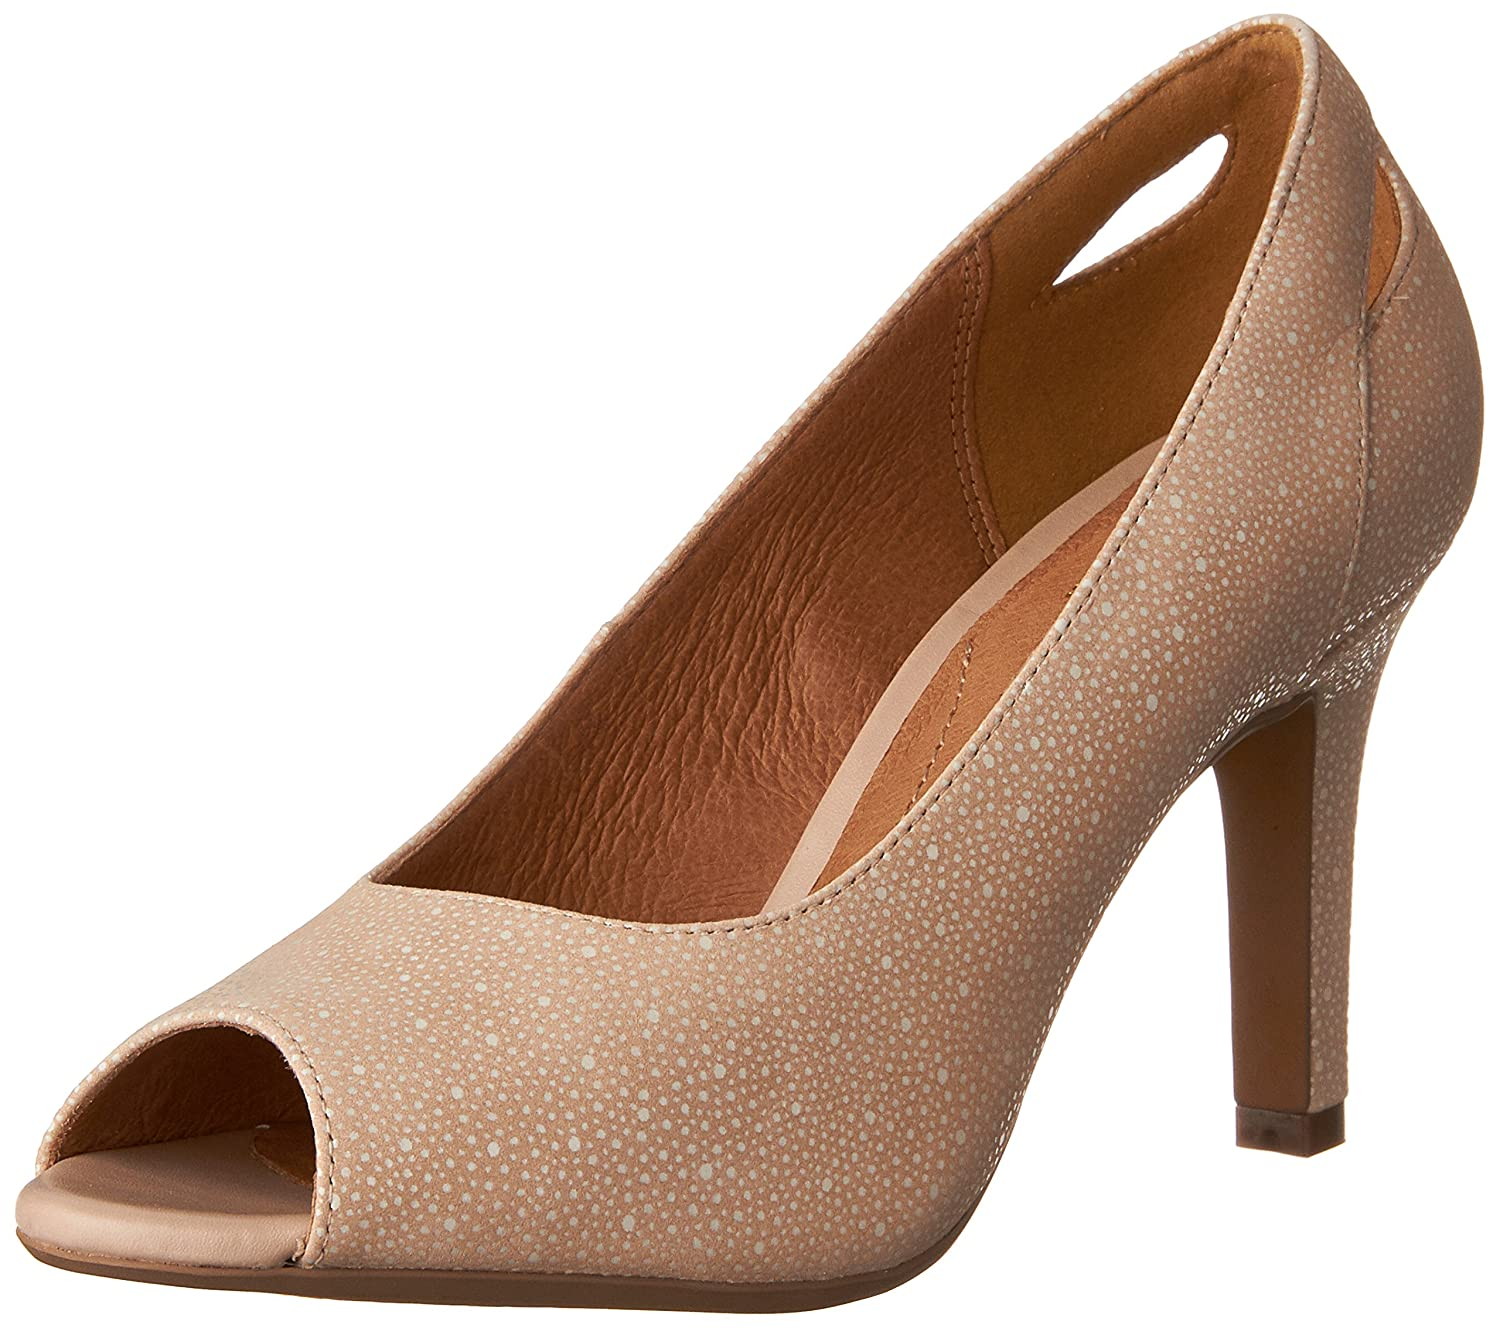 Clarks Women's Heavenly Maze Pump B01IAC1YYK 8 B(M) US|Dusty Pink Interest Nubuck